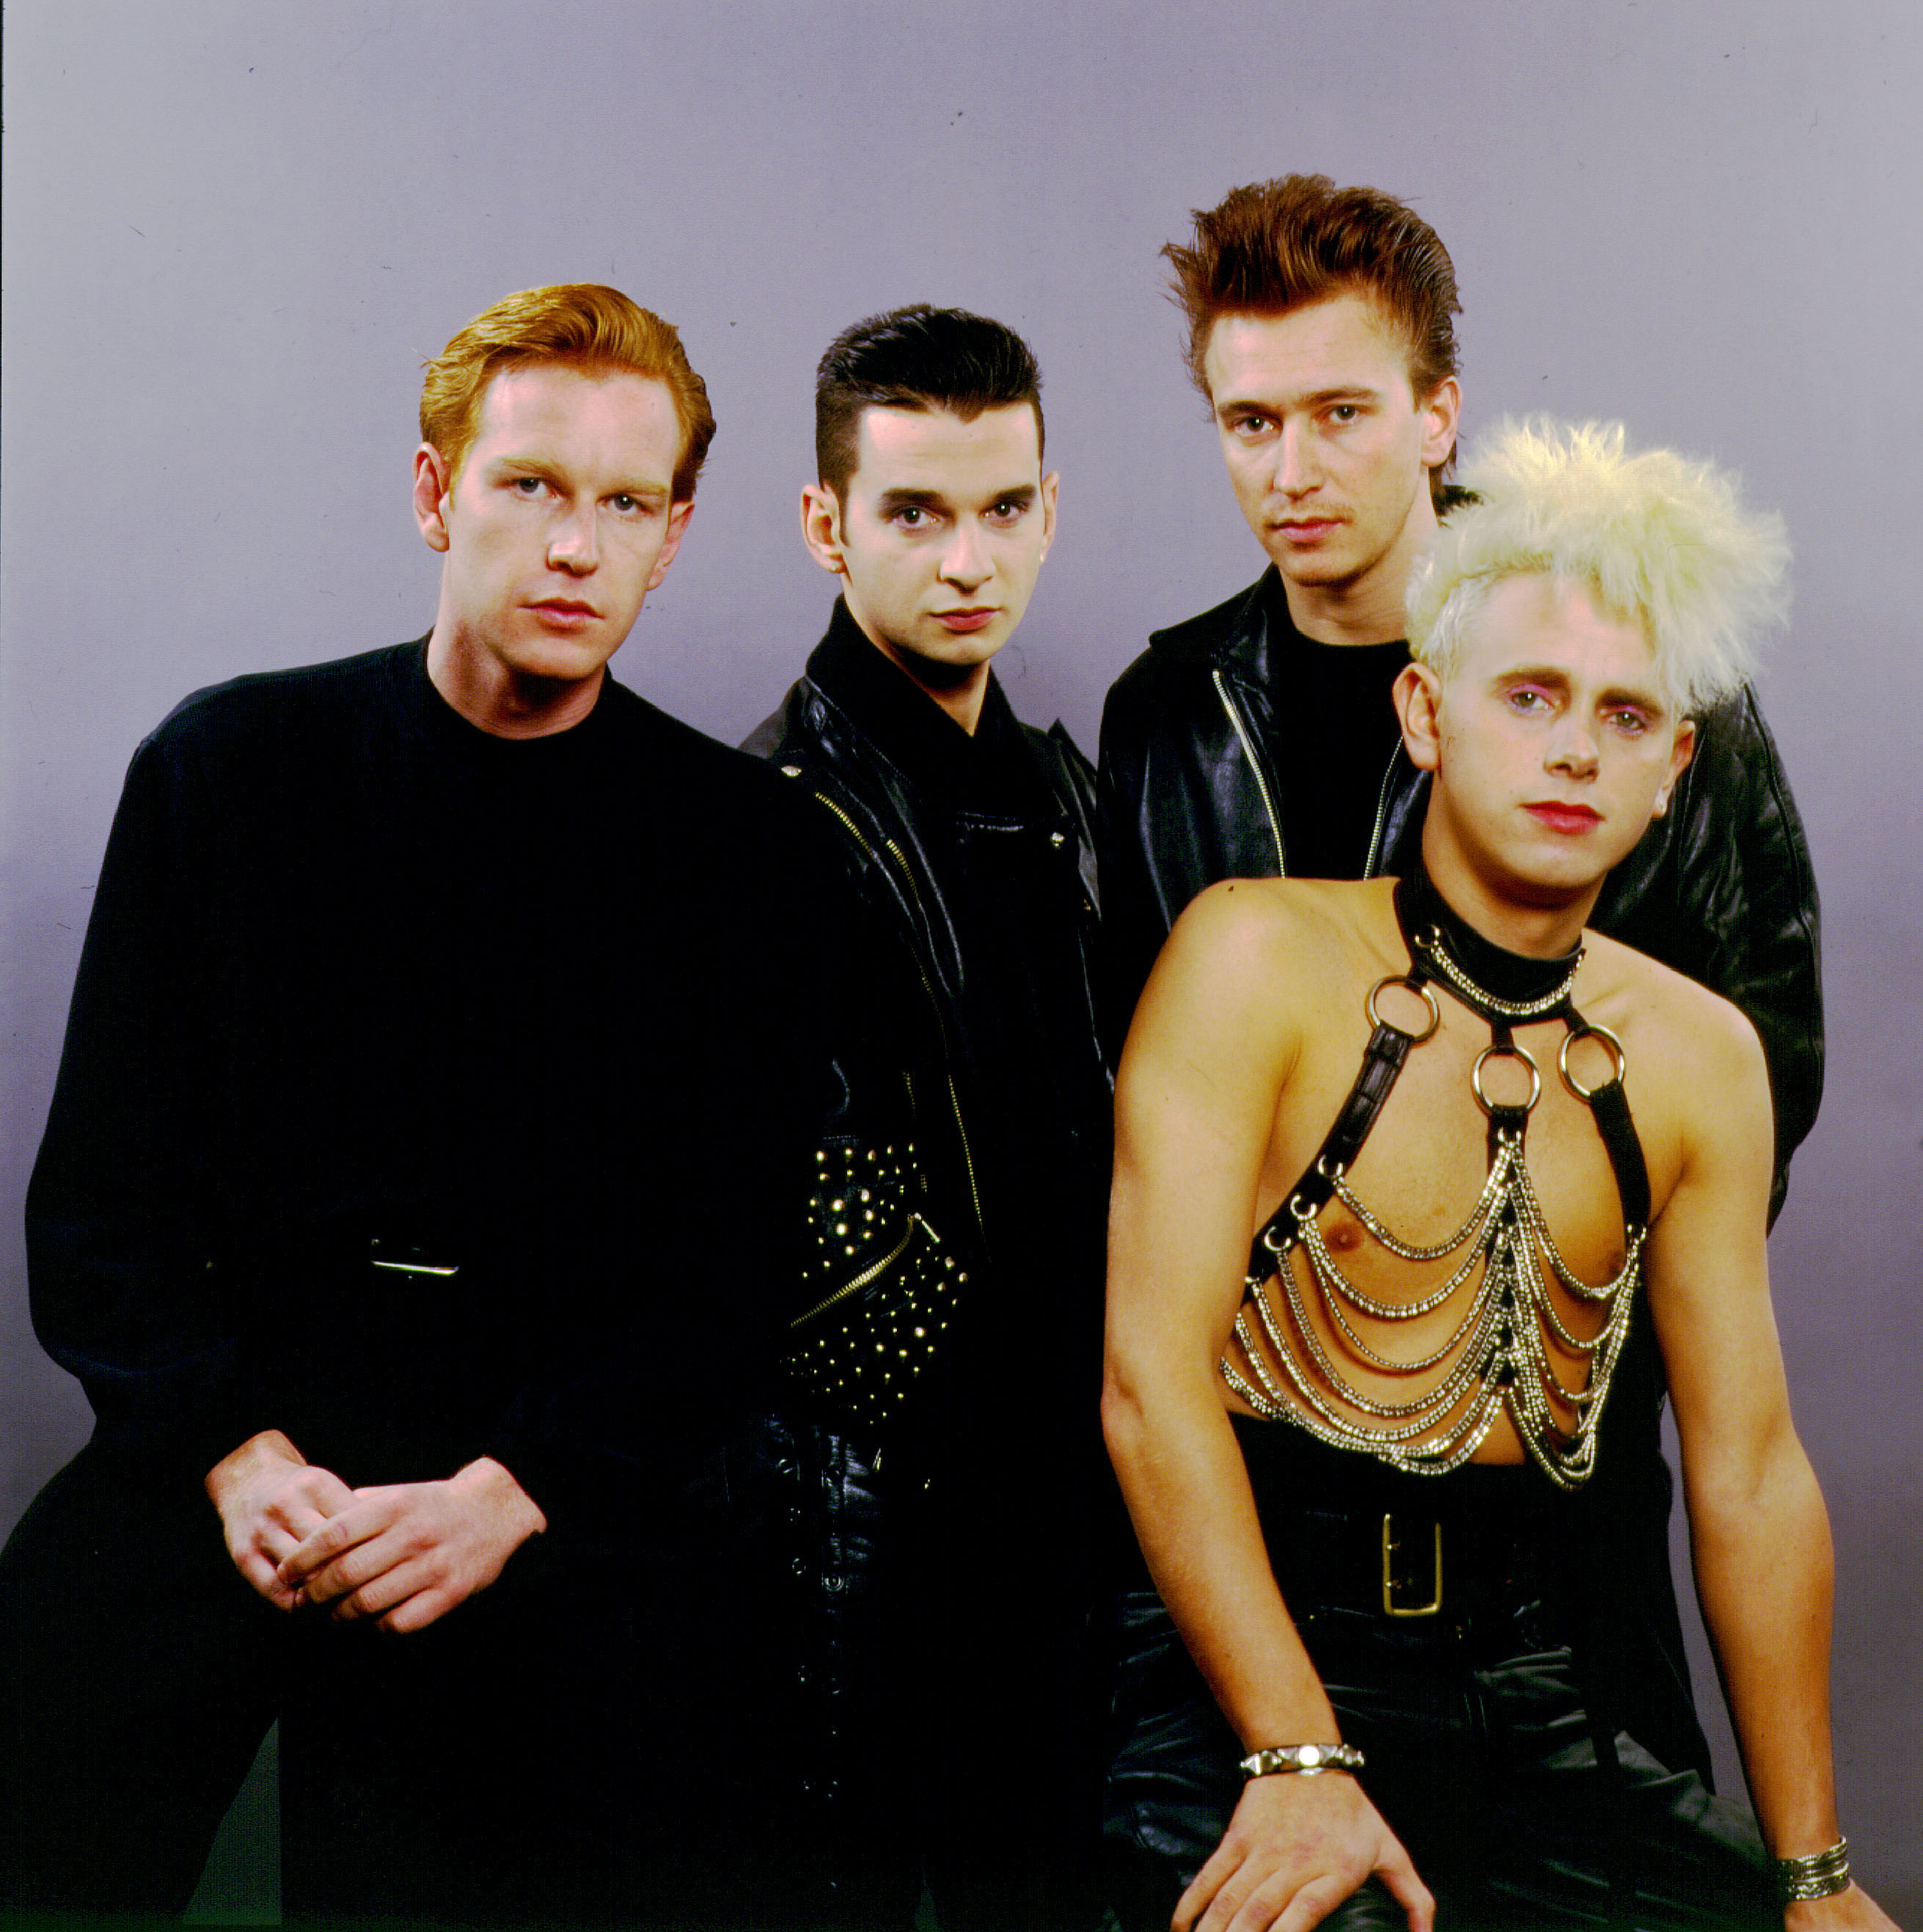 rs 205371 GettyImages 96996621 - Depeche Mode